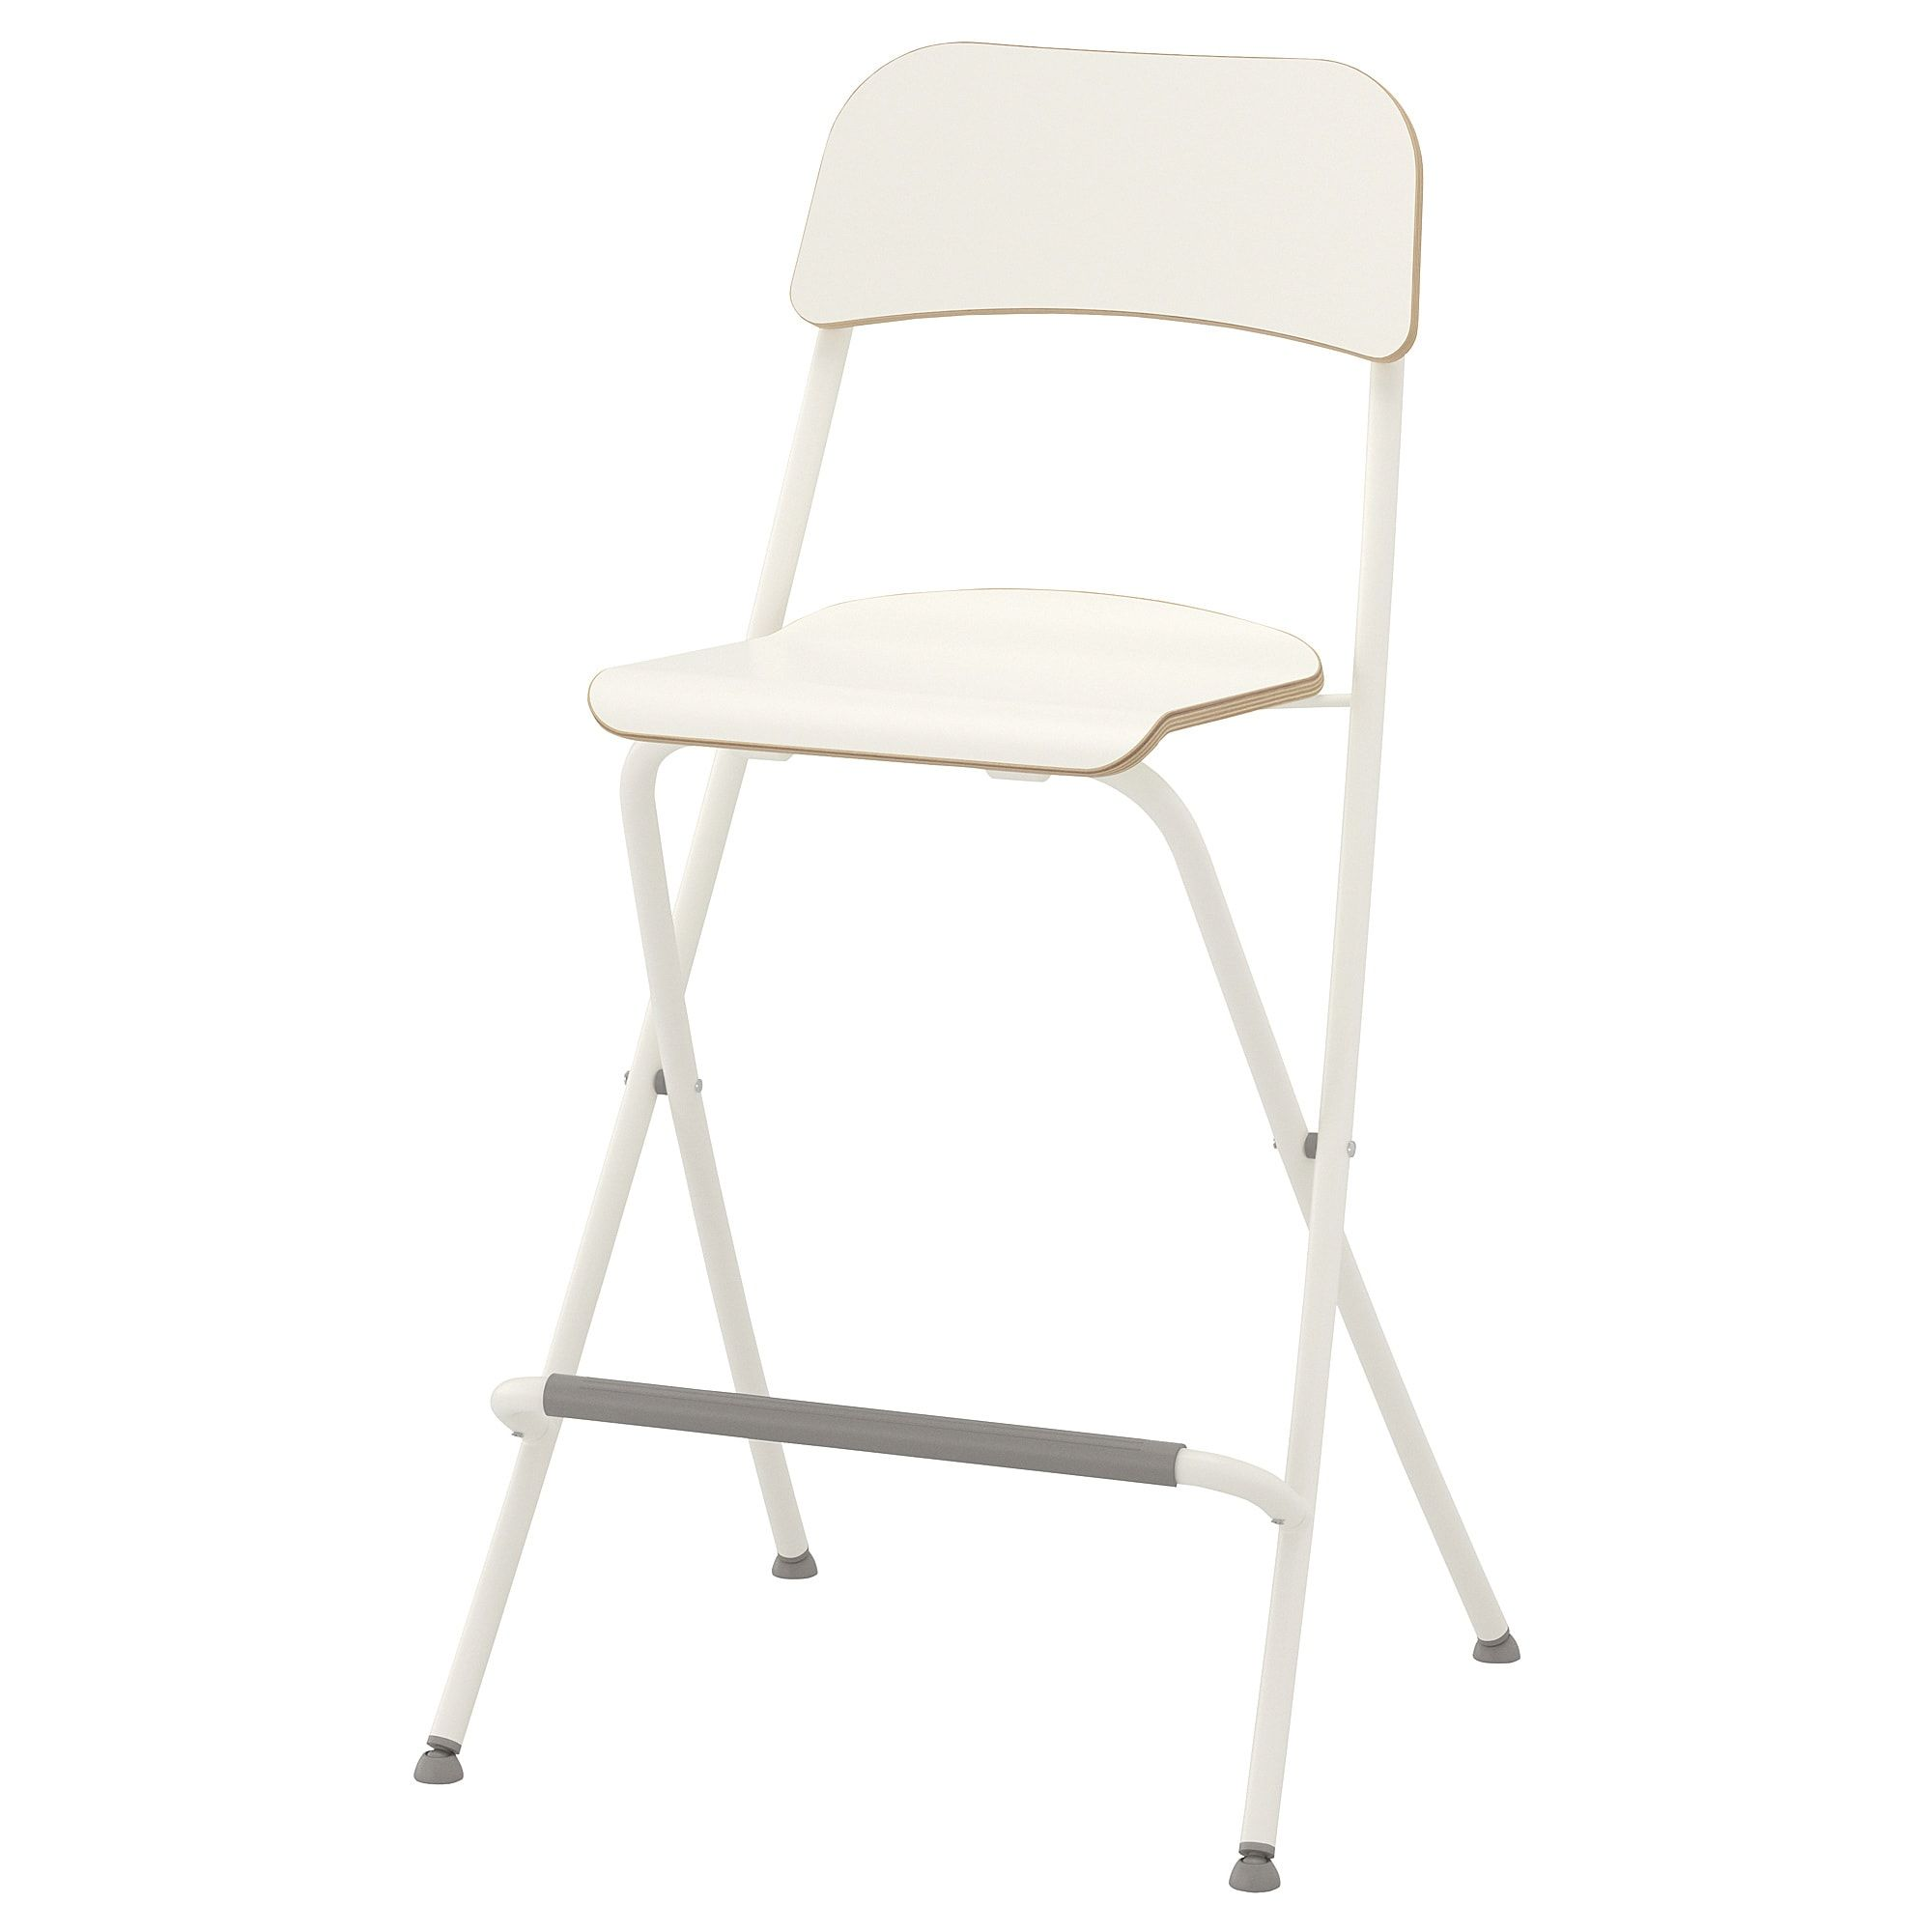 Cool Franklin Bar Stool With Backrest Foldable White White In Machost Co Dining Chair Design Ideas Machostcouk